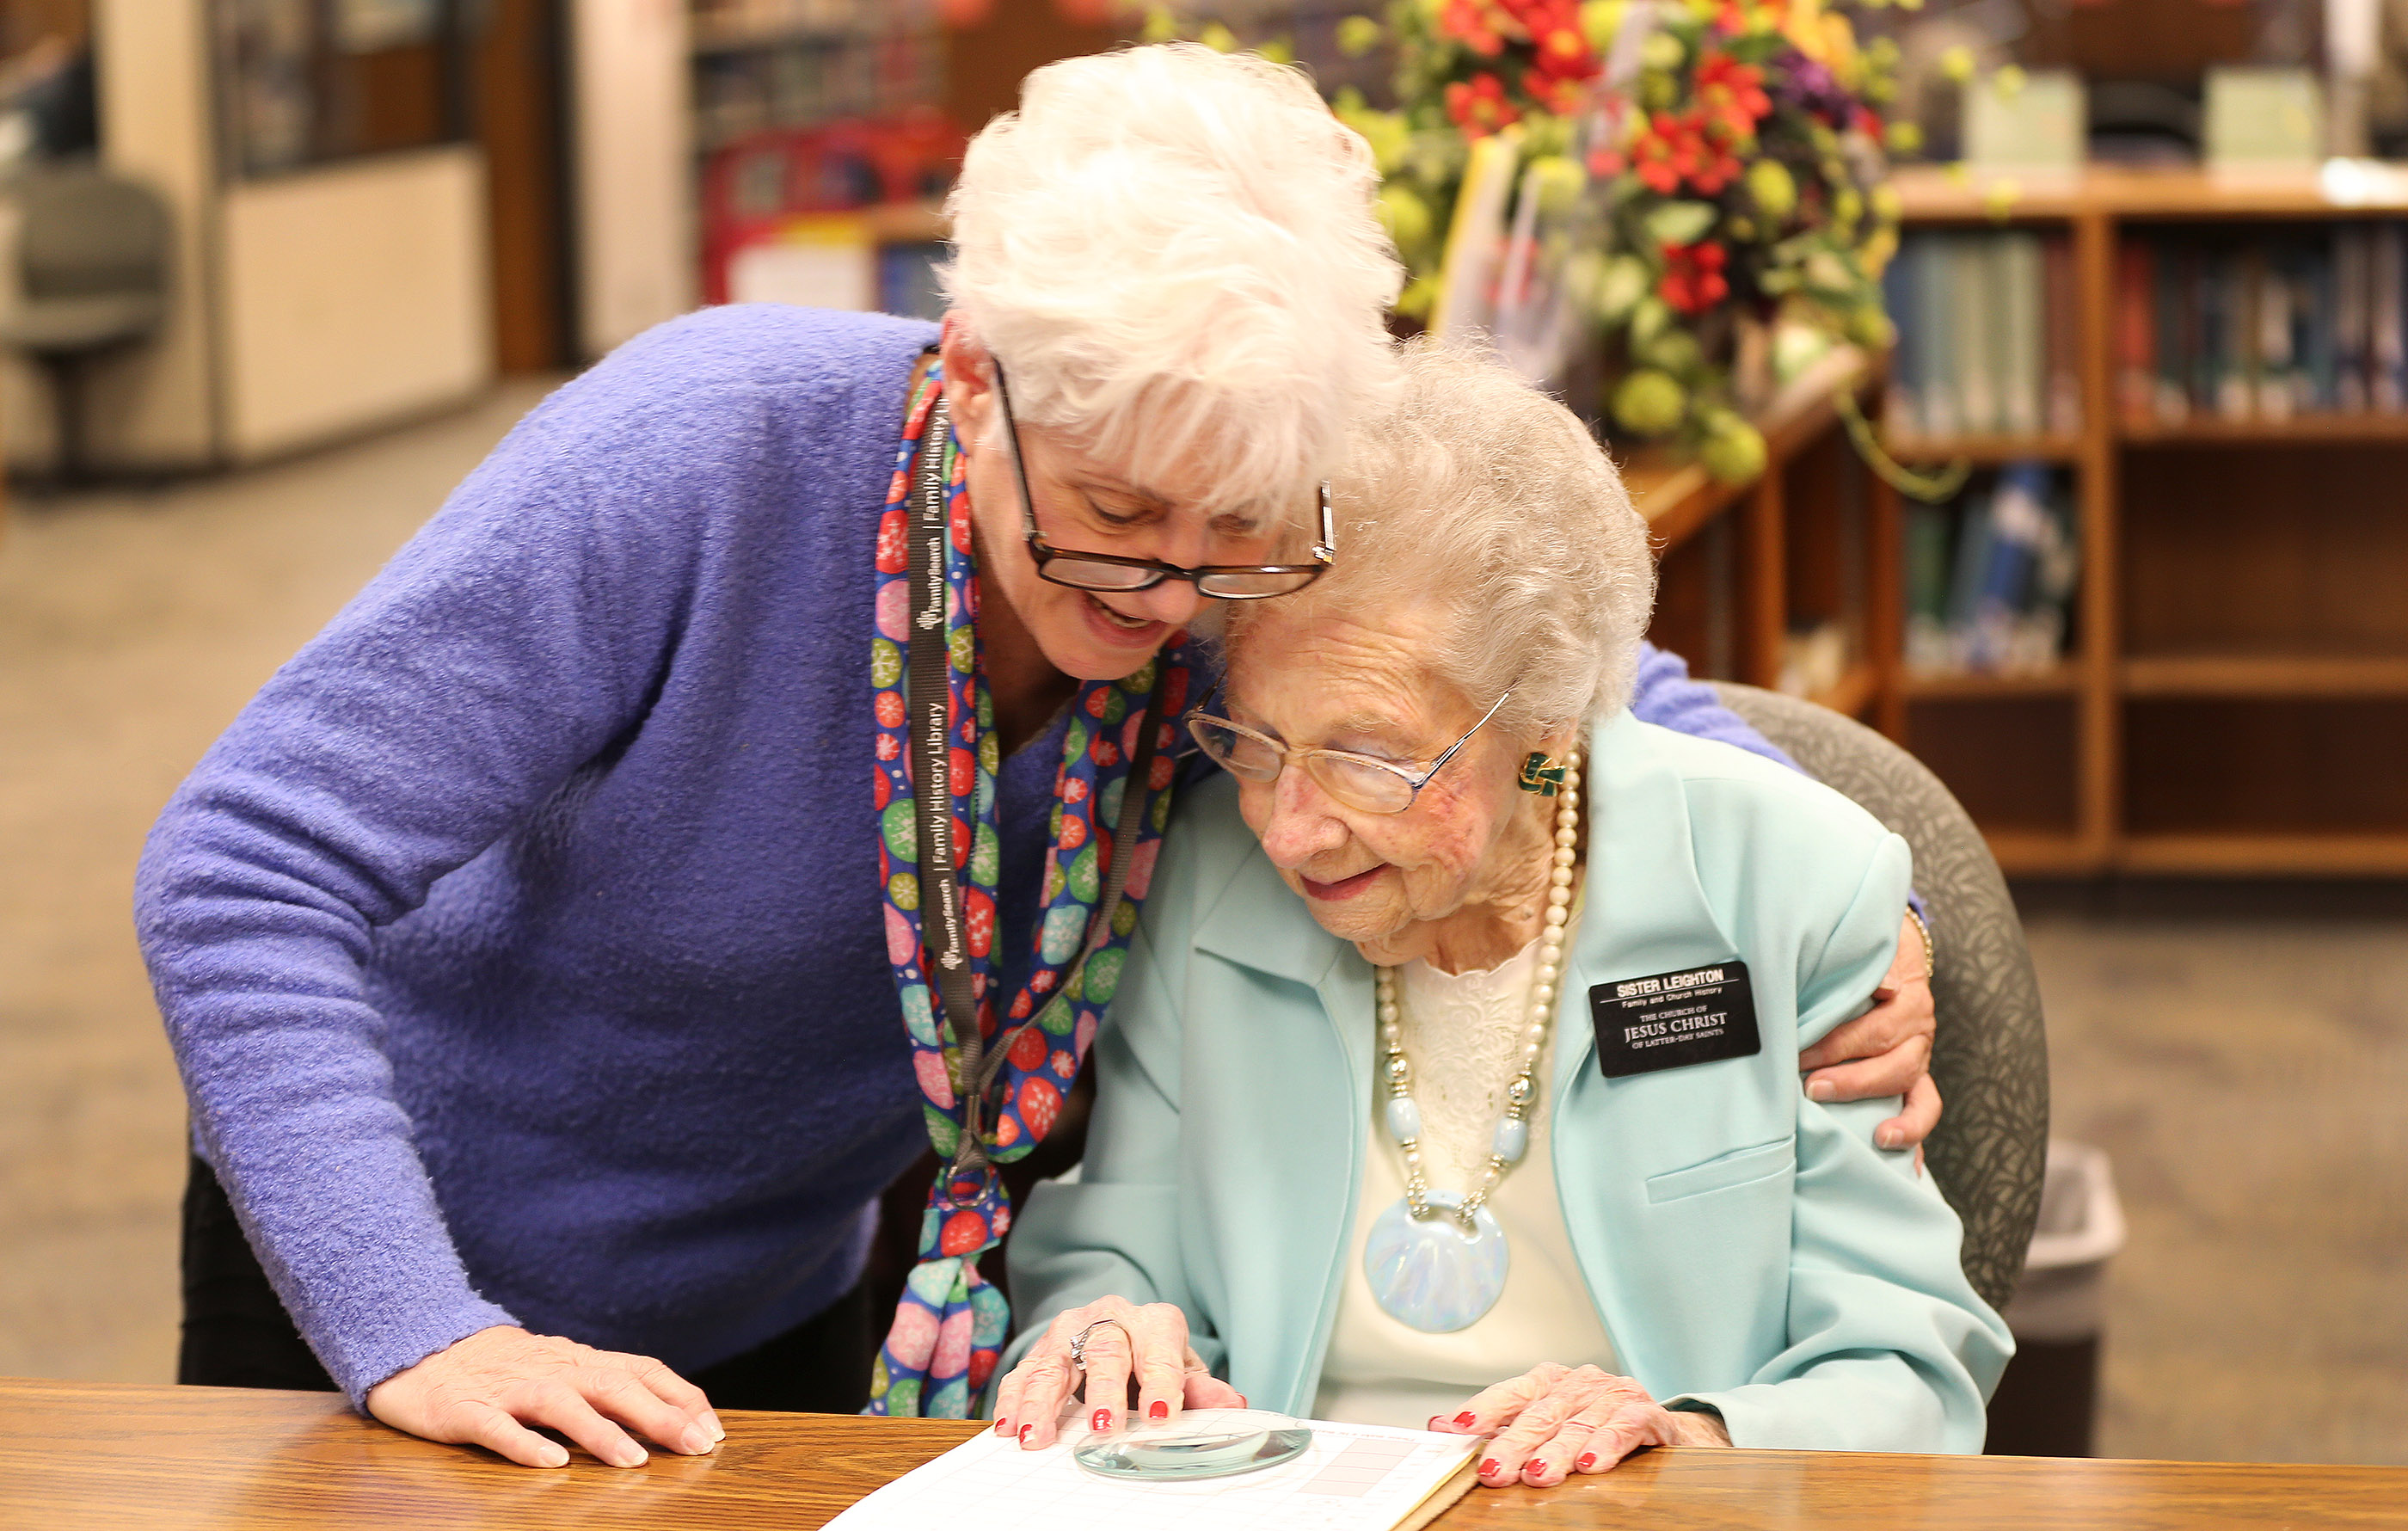 Nellie Leighton, 99, right, is hugged by fellow missionary Raelene Tondro at the Family History Library in Salt Lake City on Tuesday, Jan. 22, 2019. Leighton will celebrate her 100th birthday in February.